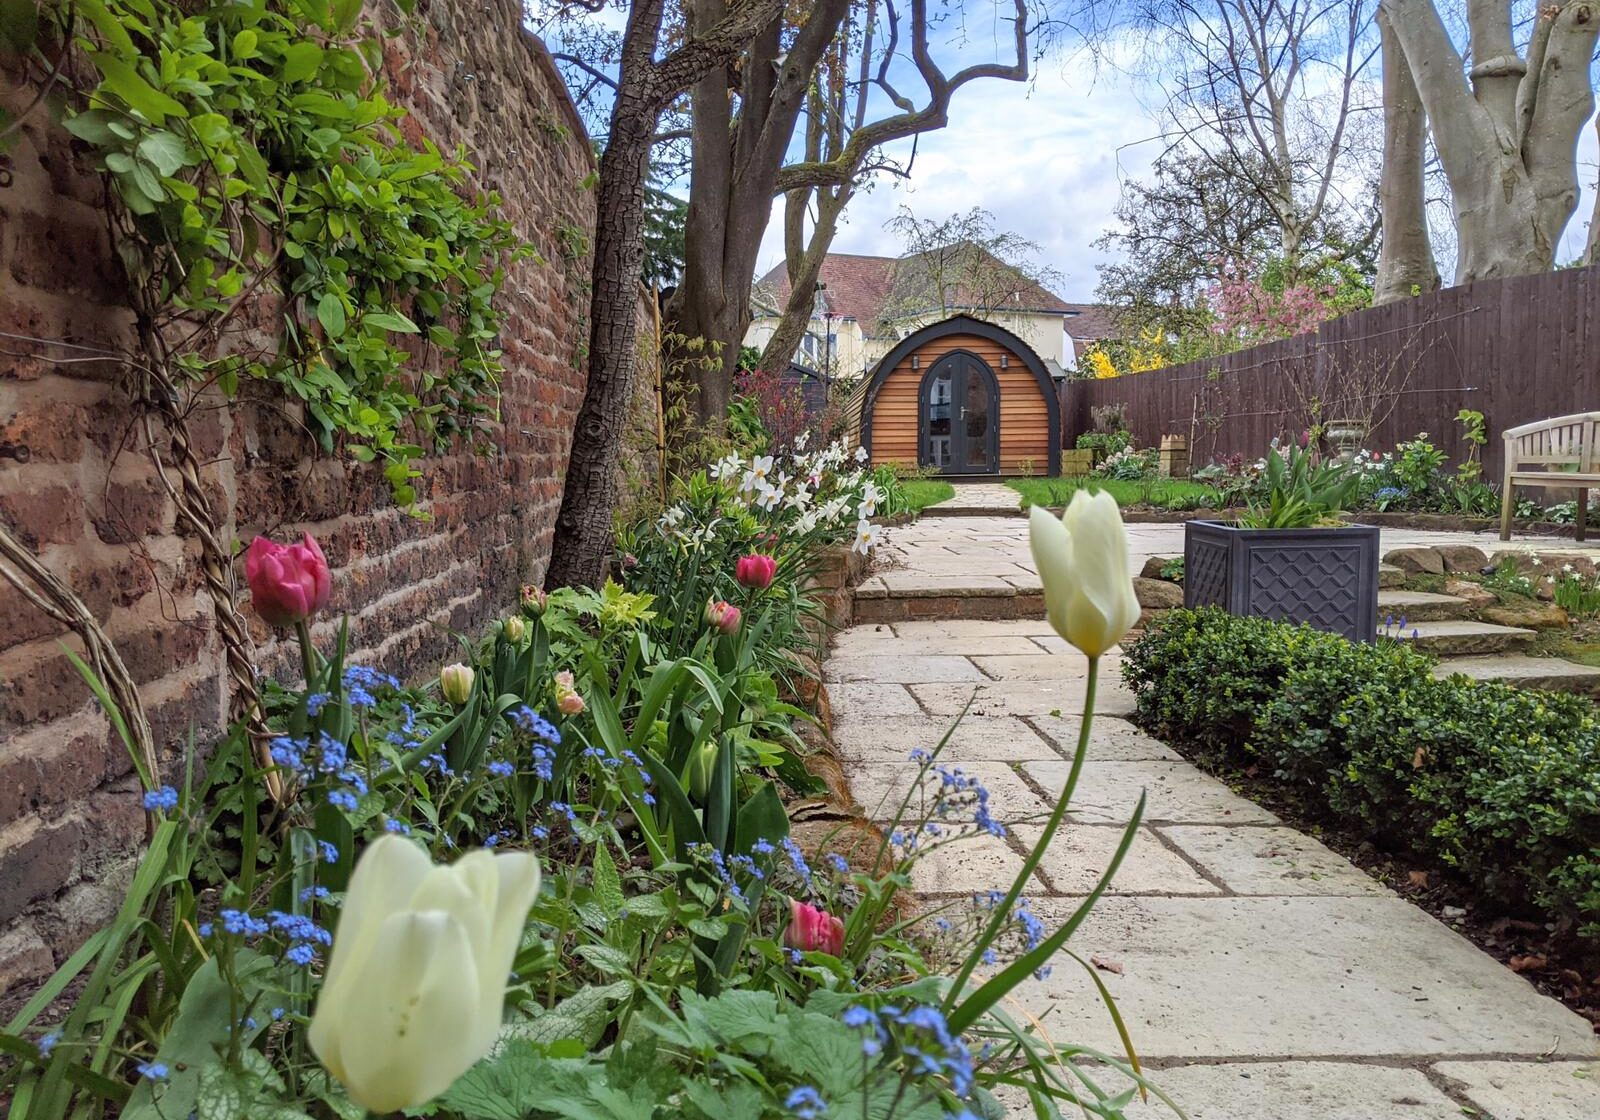 The Mews Cottage Garden in Chester